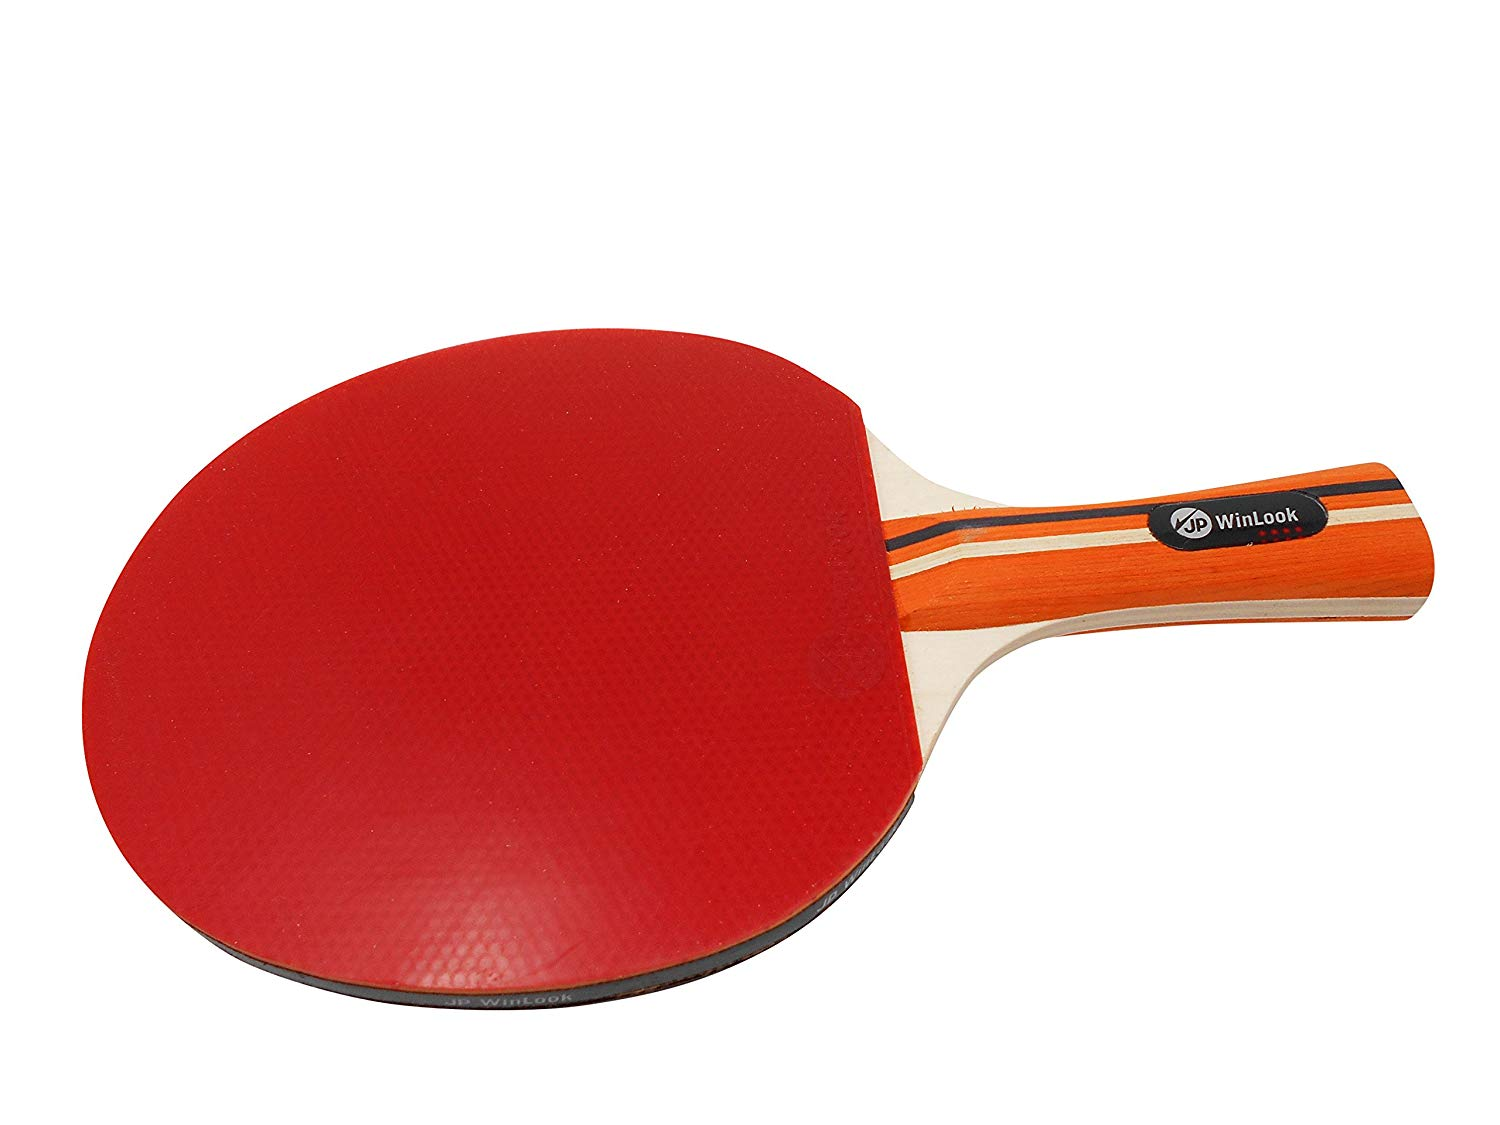 e3ff333c24 17 Best Ping Pong Paddles Reviews | Killerspin, Butterfly, DHS ...